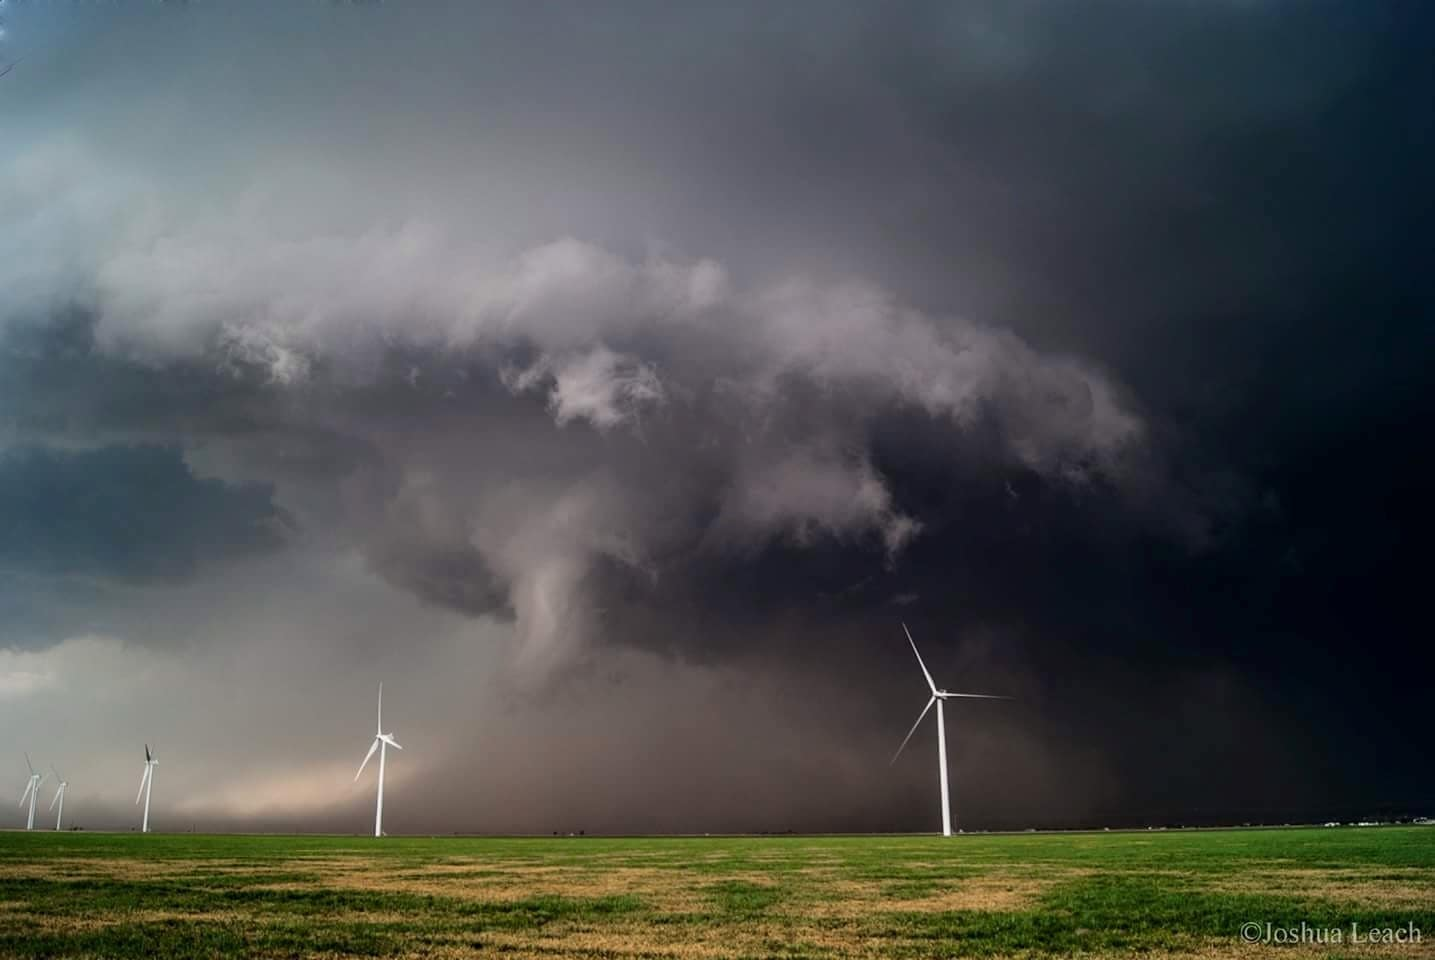 SE of Hereford, TX 4/22/2015